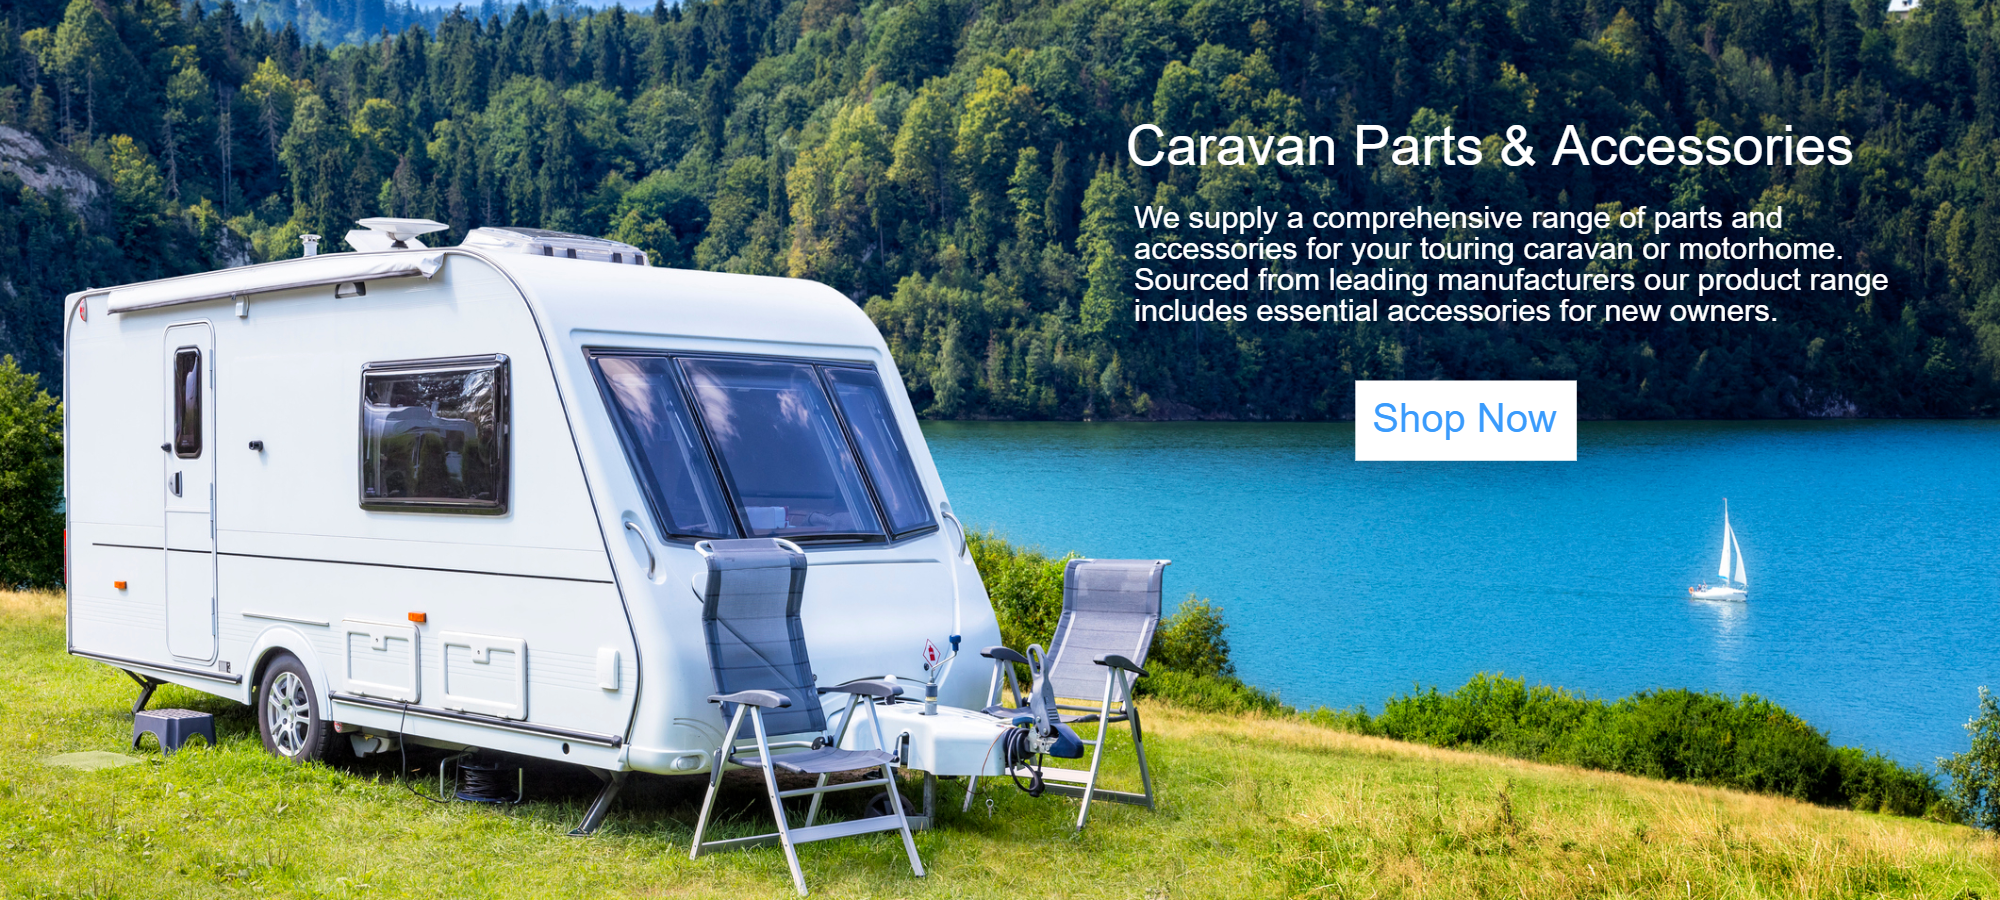 Parts and Accessories for Touring Caravans and Motorhomes